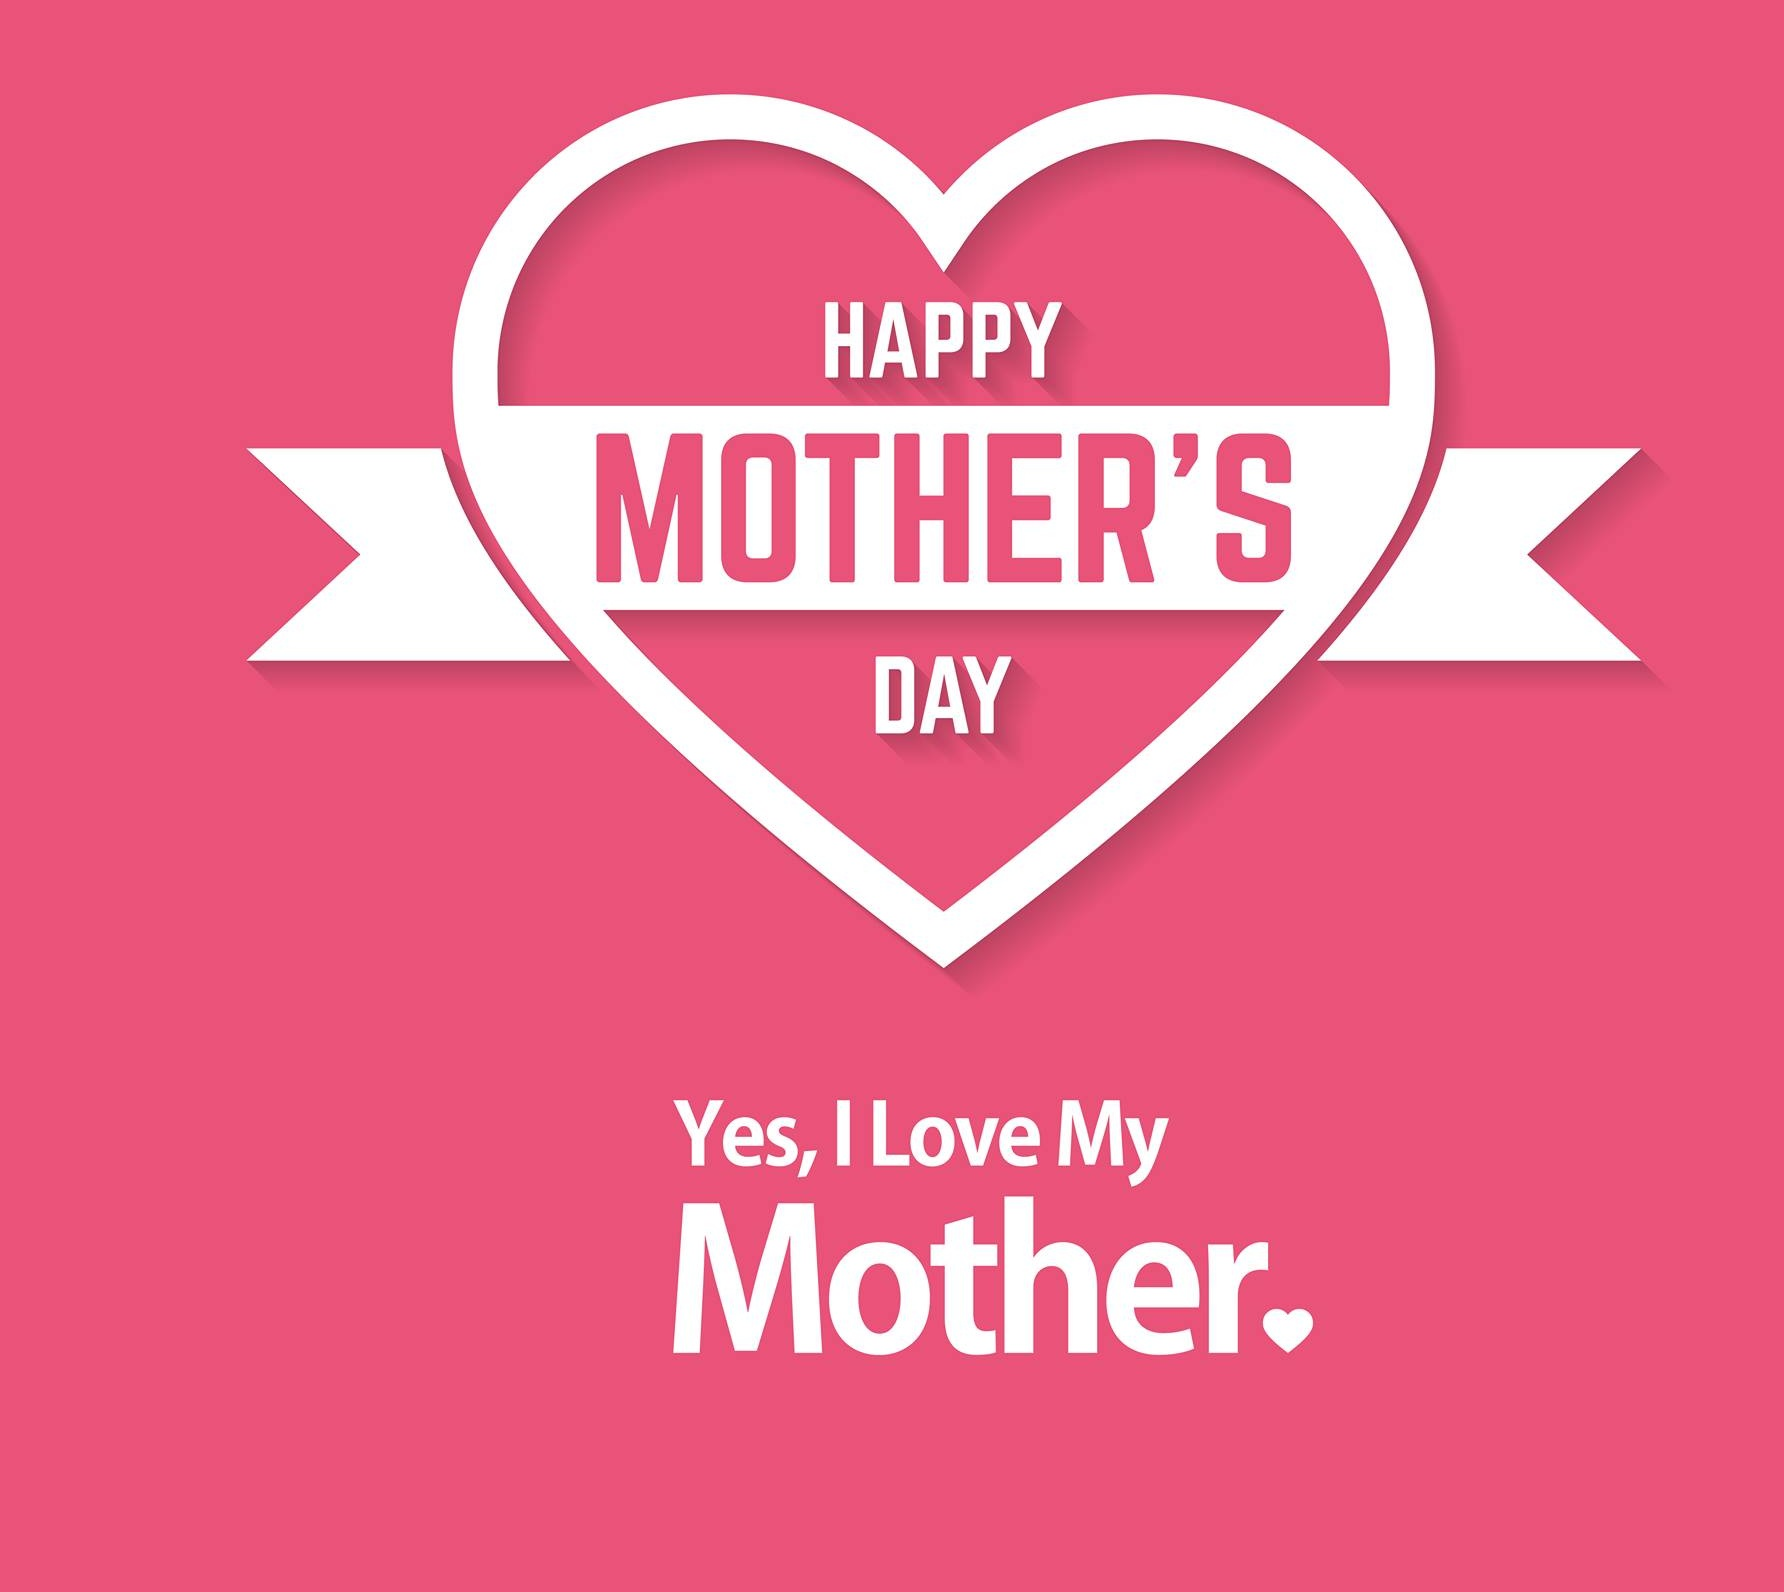 Mother S Day Special Images With Quotes: Happy Mother's Day Wishes & Quotes From Daughter Or Son